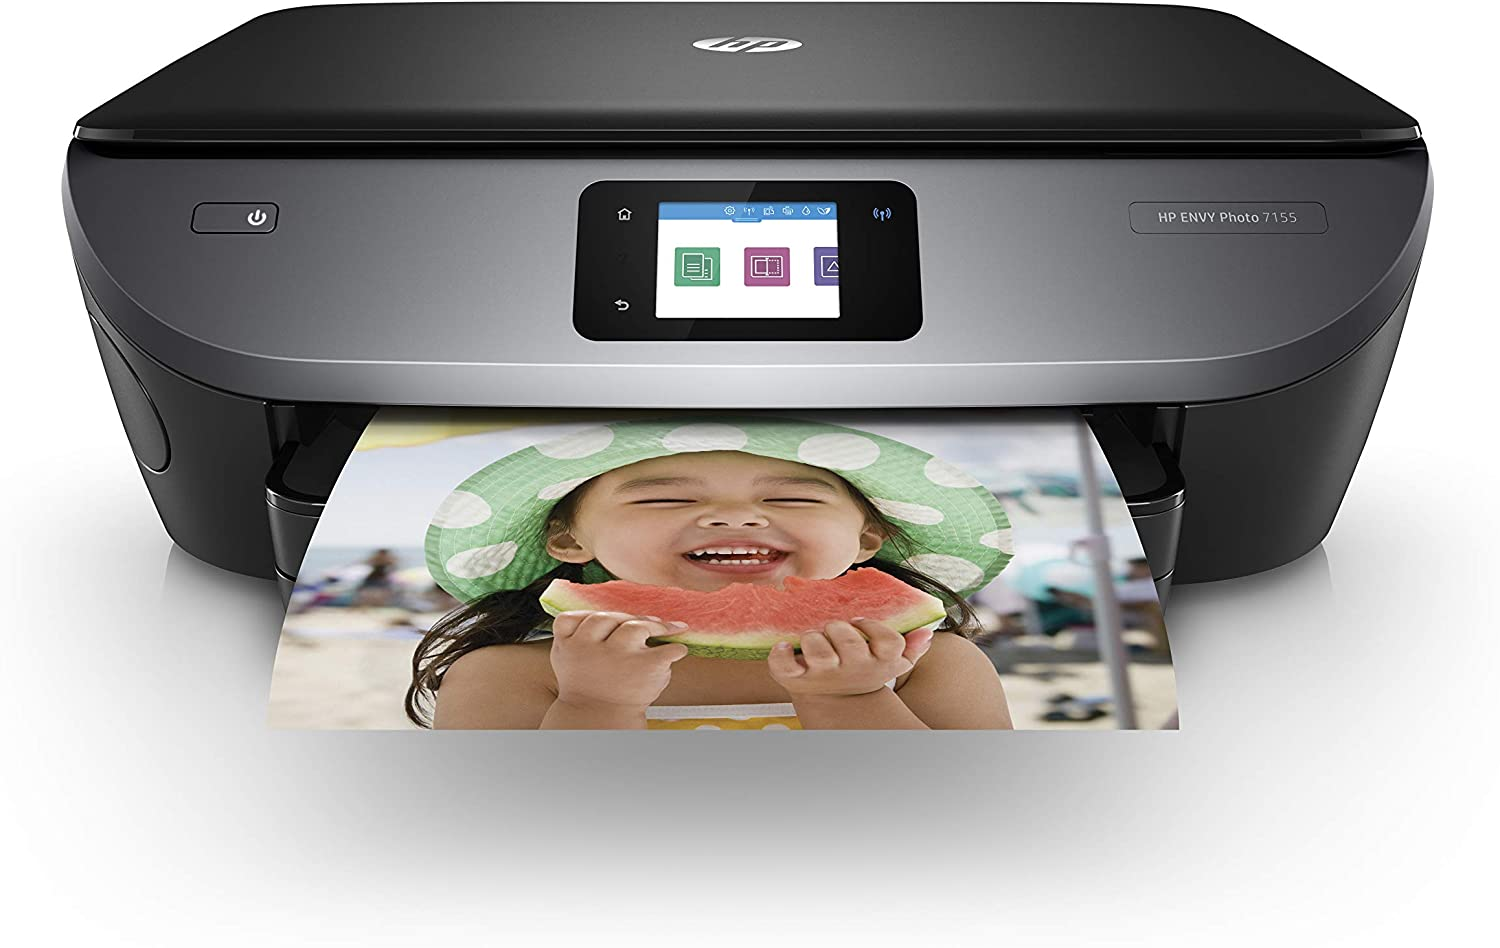 HP ENVY Photo 7155 All-in-One Photo Printer with Wireless Printer